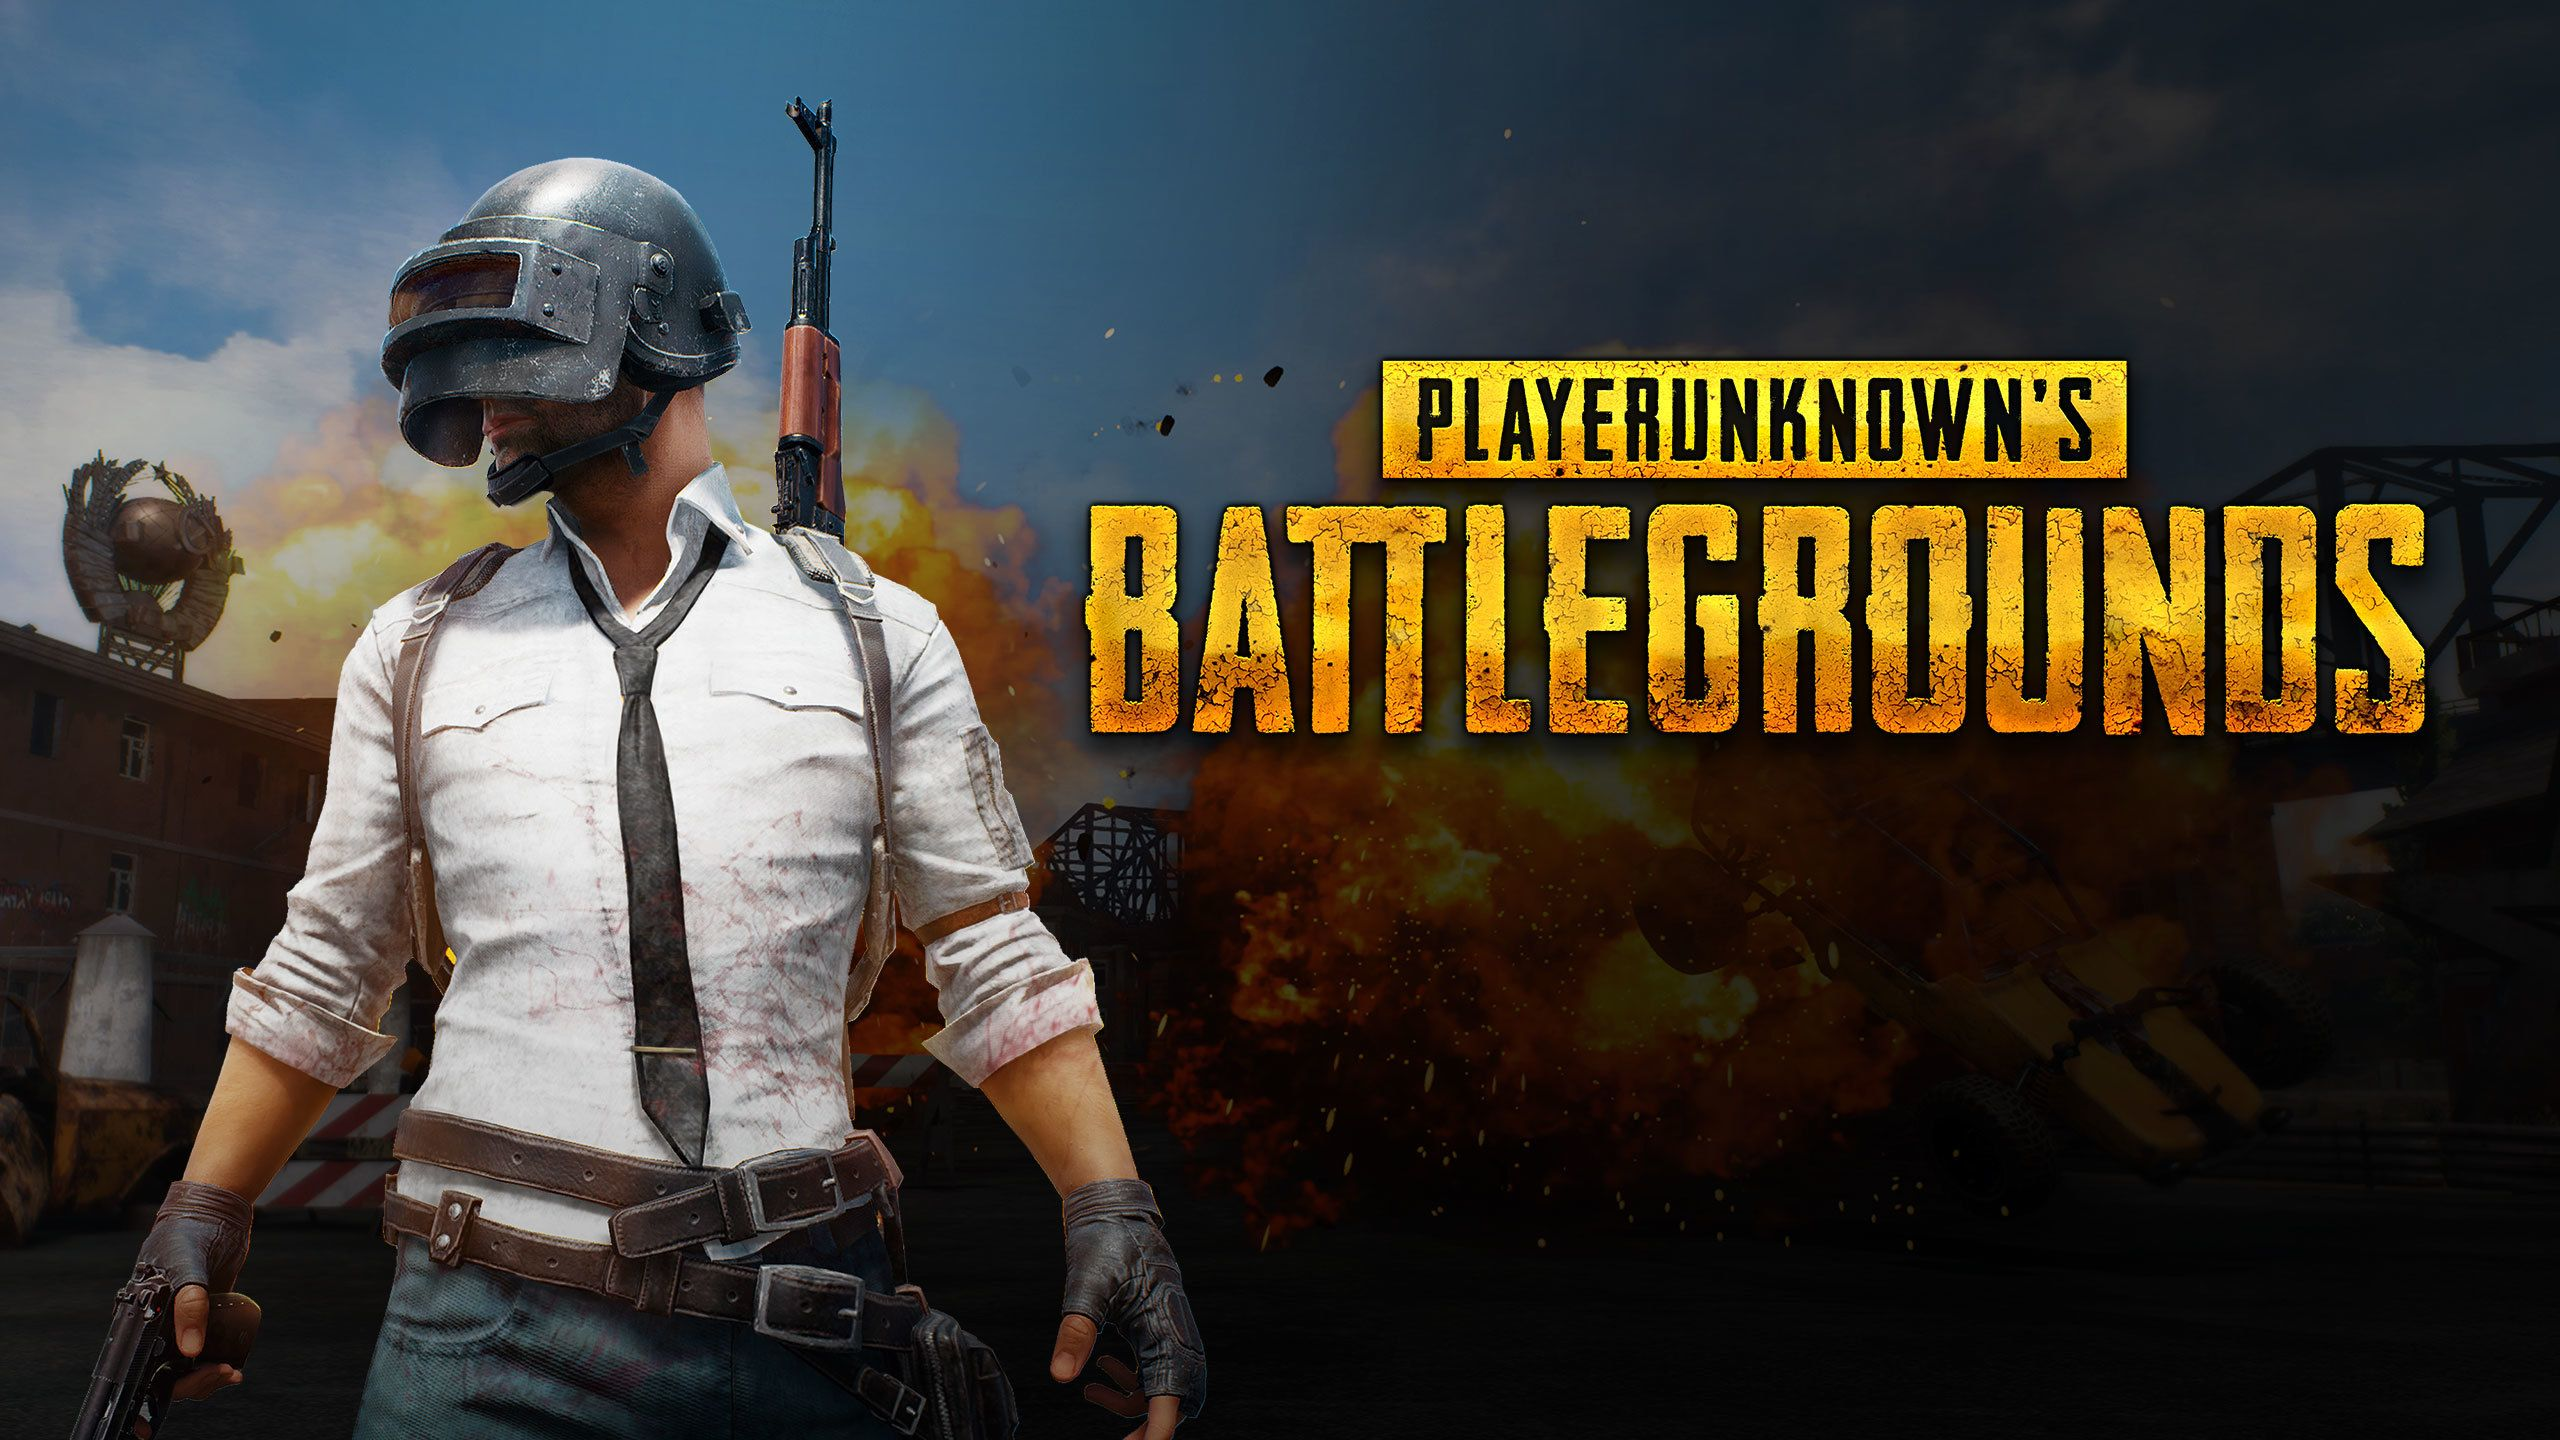 wp2208834 pubg wallpapers - Player Unknown's Battlegrounds (PUBG) 4K - Pubg wallpaper phone, pubg wallpaper iphone, pubg wallpaper 1920x1080 hd, pubg hd wallpapers, pubg 4k wallpapers, Player Unknown's Battlegrounds 4k wallpapers